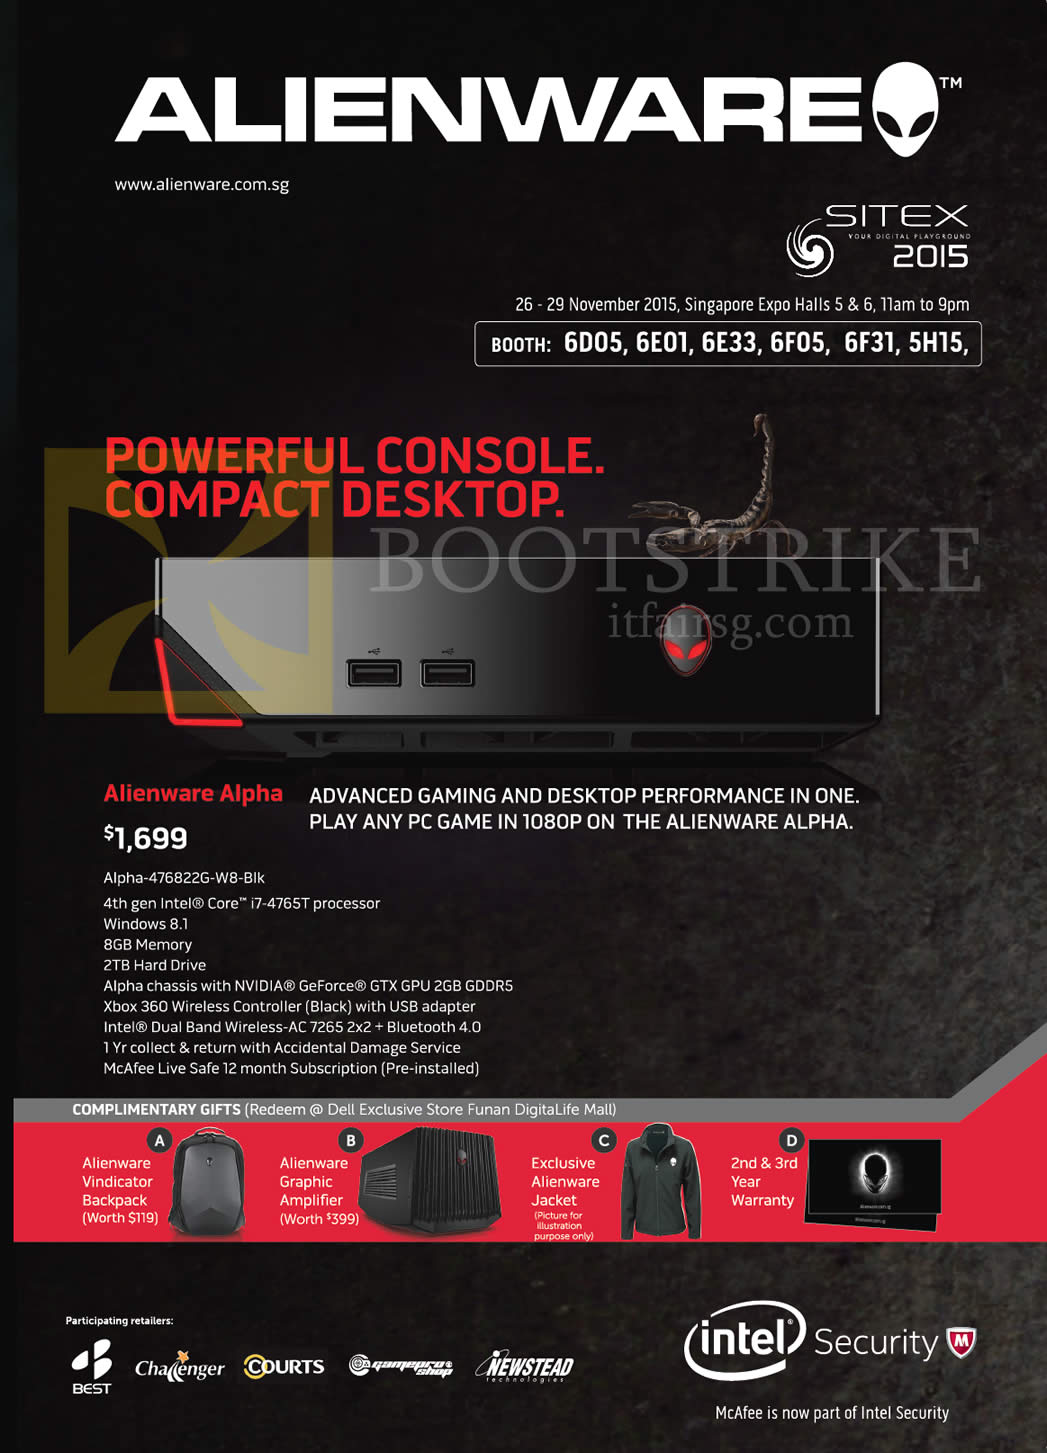 SITEX 2015 price list image brochure of Dell Alienware Alpha-476822G-W8-Blk, Complimentary Gifts, Alienware Vindicator Backpack, Graphic Amplifier, Jacket, 2nd N 3rd Year Warranty